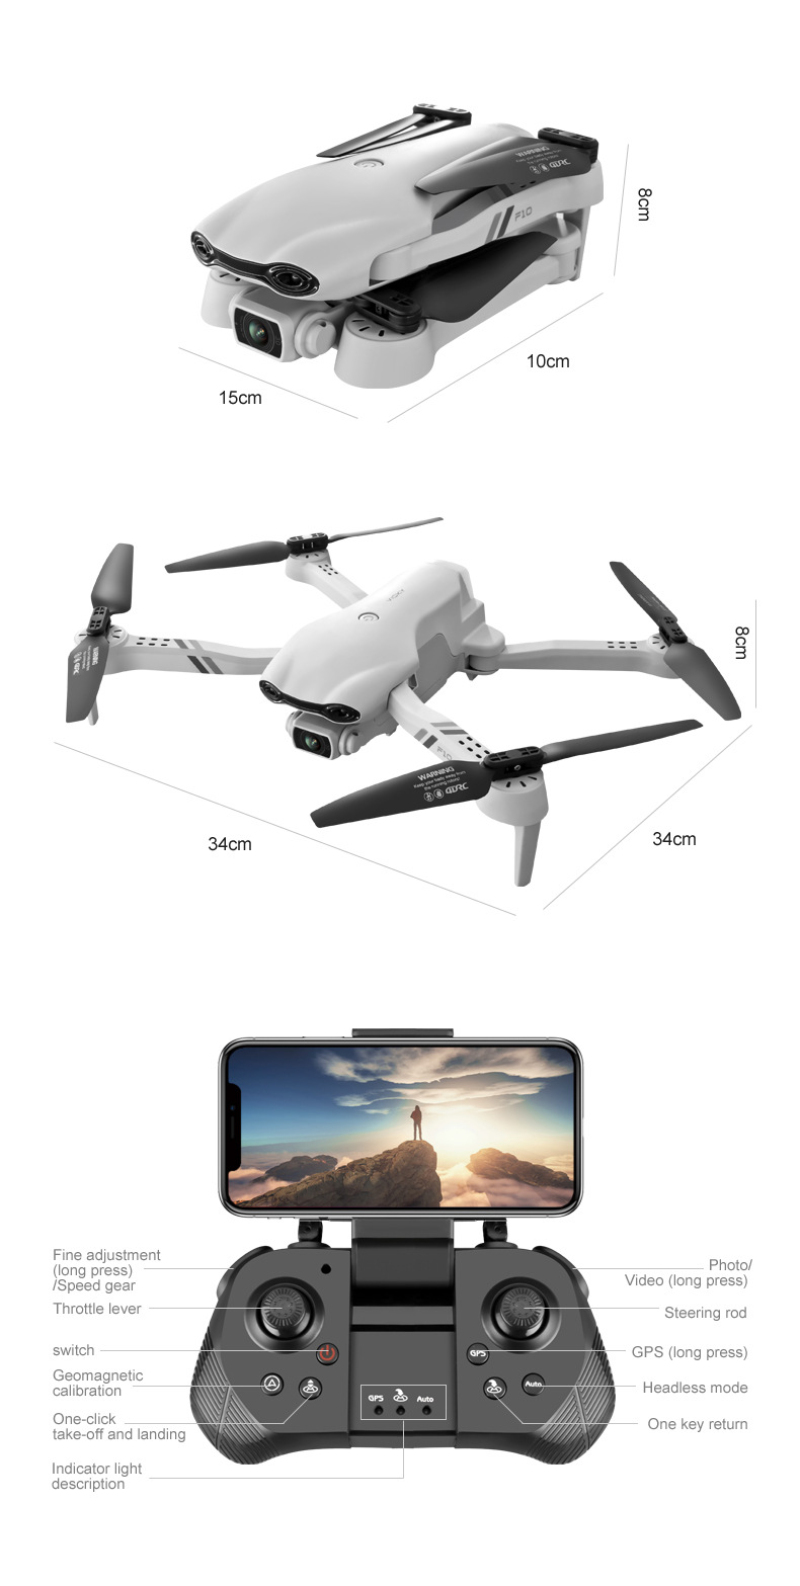 H5b2a44c324e64811948ab7760801a748J - Flying Toy 6K F10 Dual Camera With GPS 5G WIFI Wide Angle FPV Real-time Transmission Rc Distance 2km Professional Drone